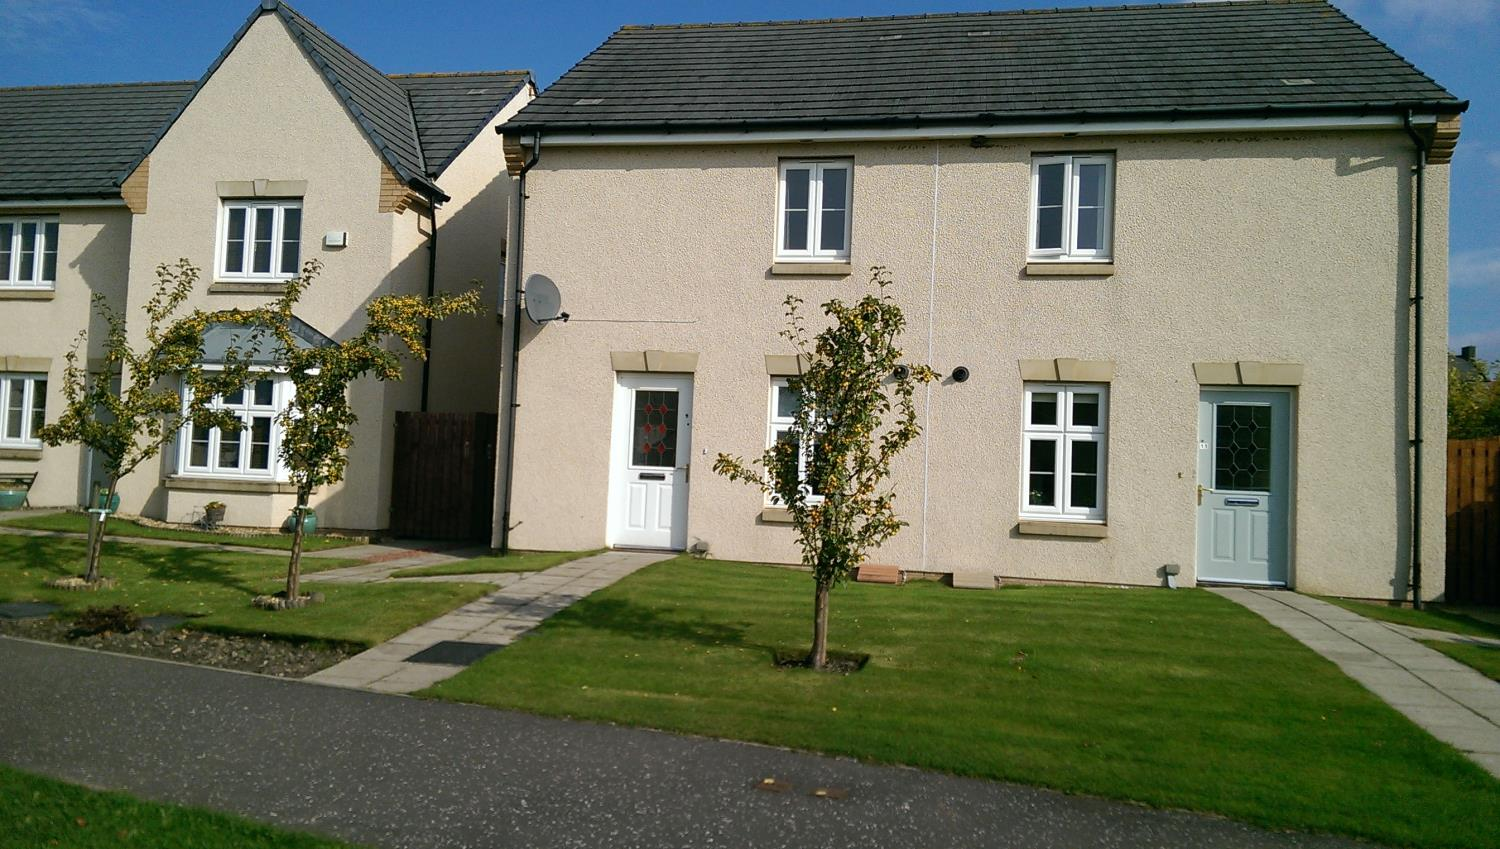 View property for rent South Quarry Drive, Gorebridge